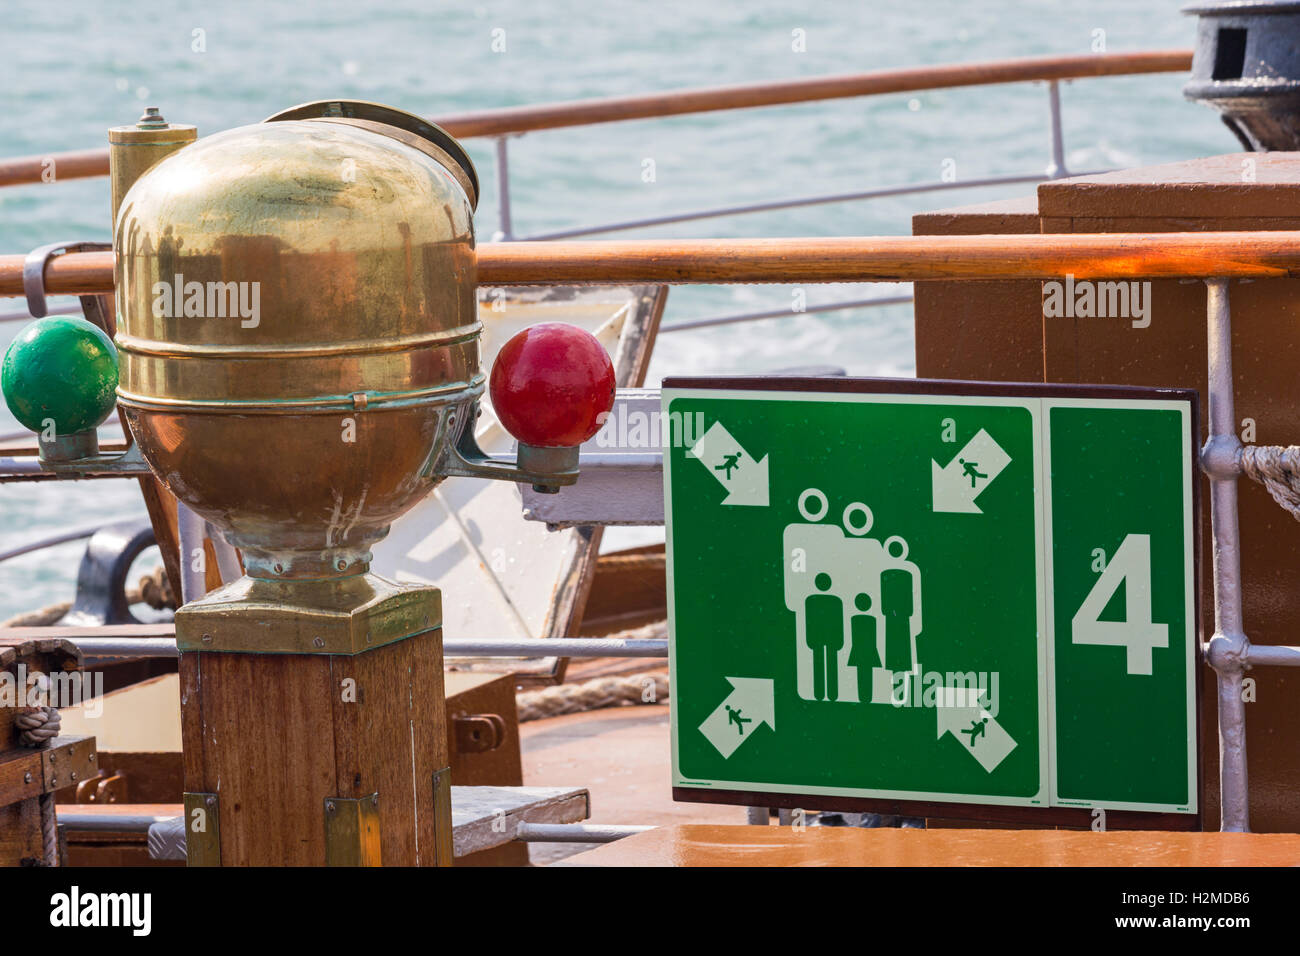 imo muster station sign and brass binnacle on the Waverley Paddle Steamer at sea on the South Coast in September - Stock Image